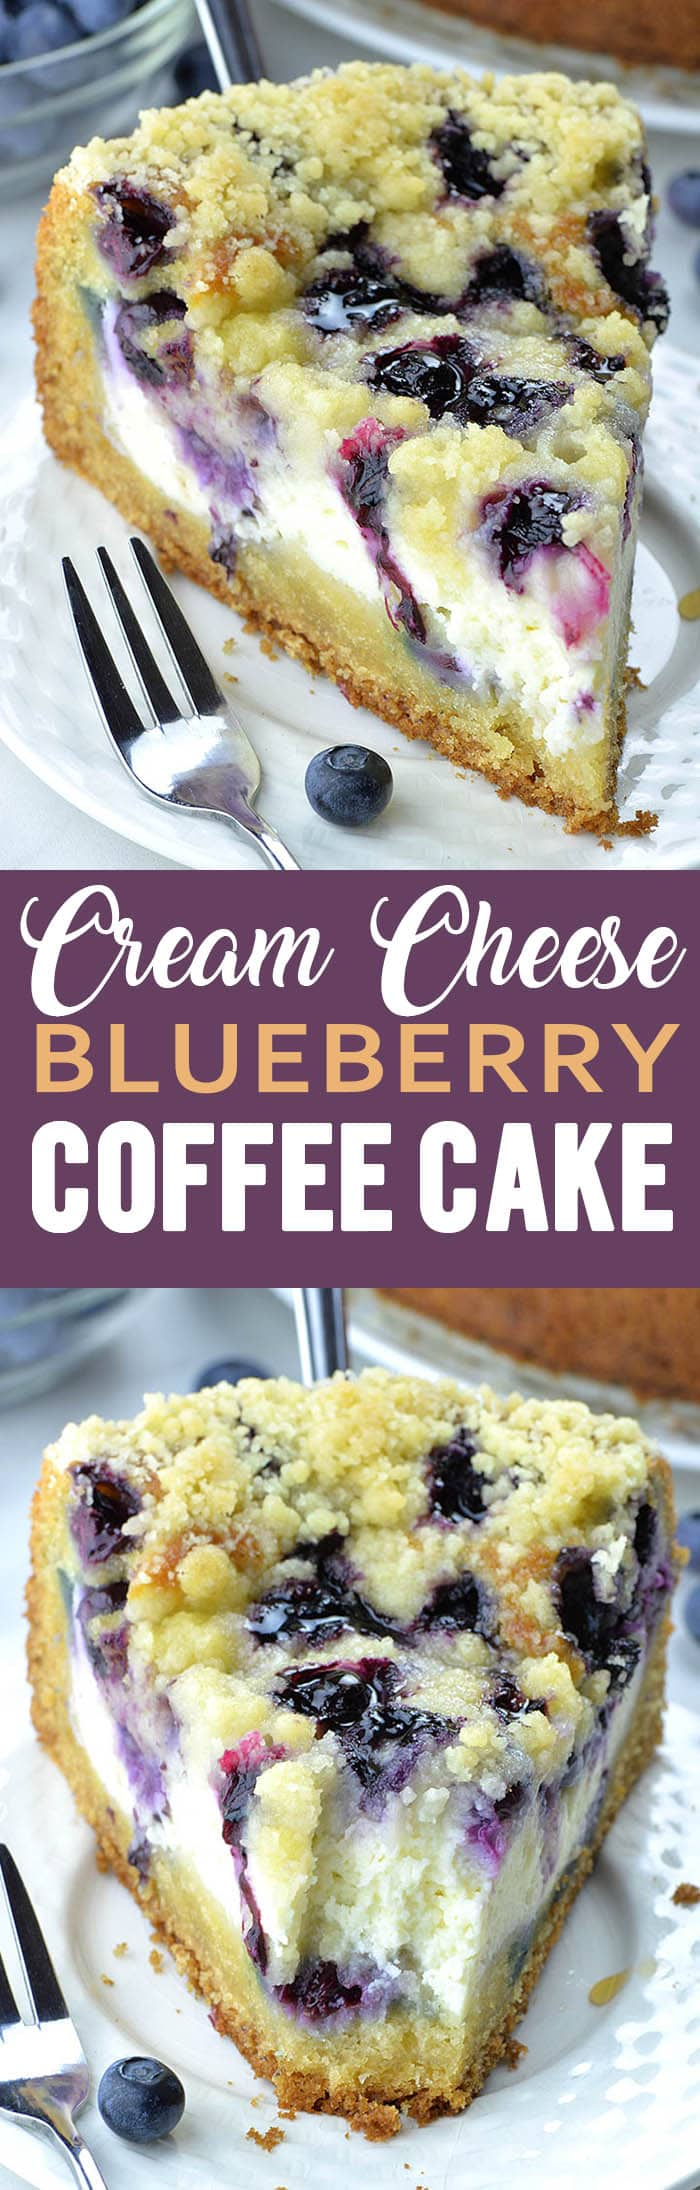 Blueberry Cream Cheese Coffee Cake will be your new favorite coffee cake recipe! Easy coffee cake recipe is perfect for morning treats, brunch or dessert cake after dinner!  #blueberry #coffeecake #blueberryrecipes